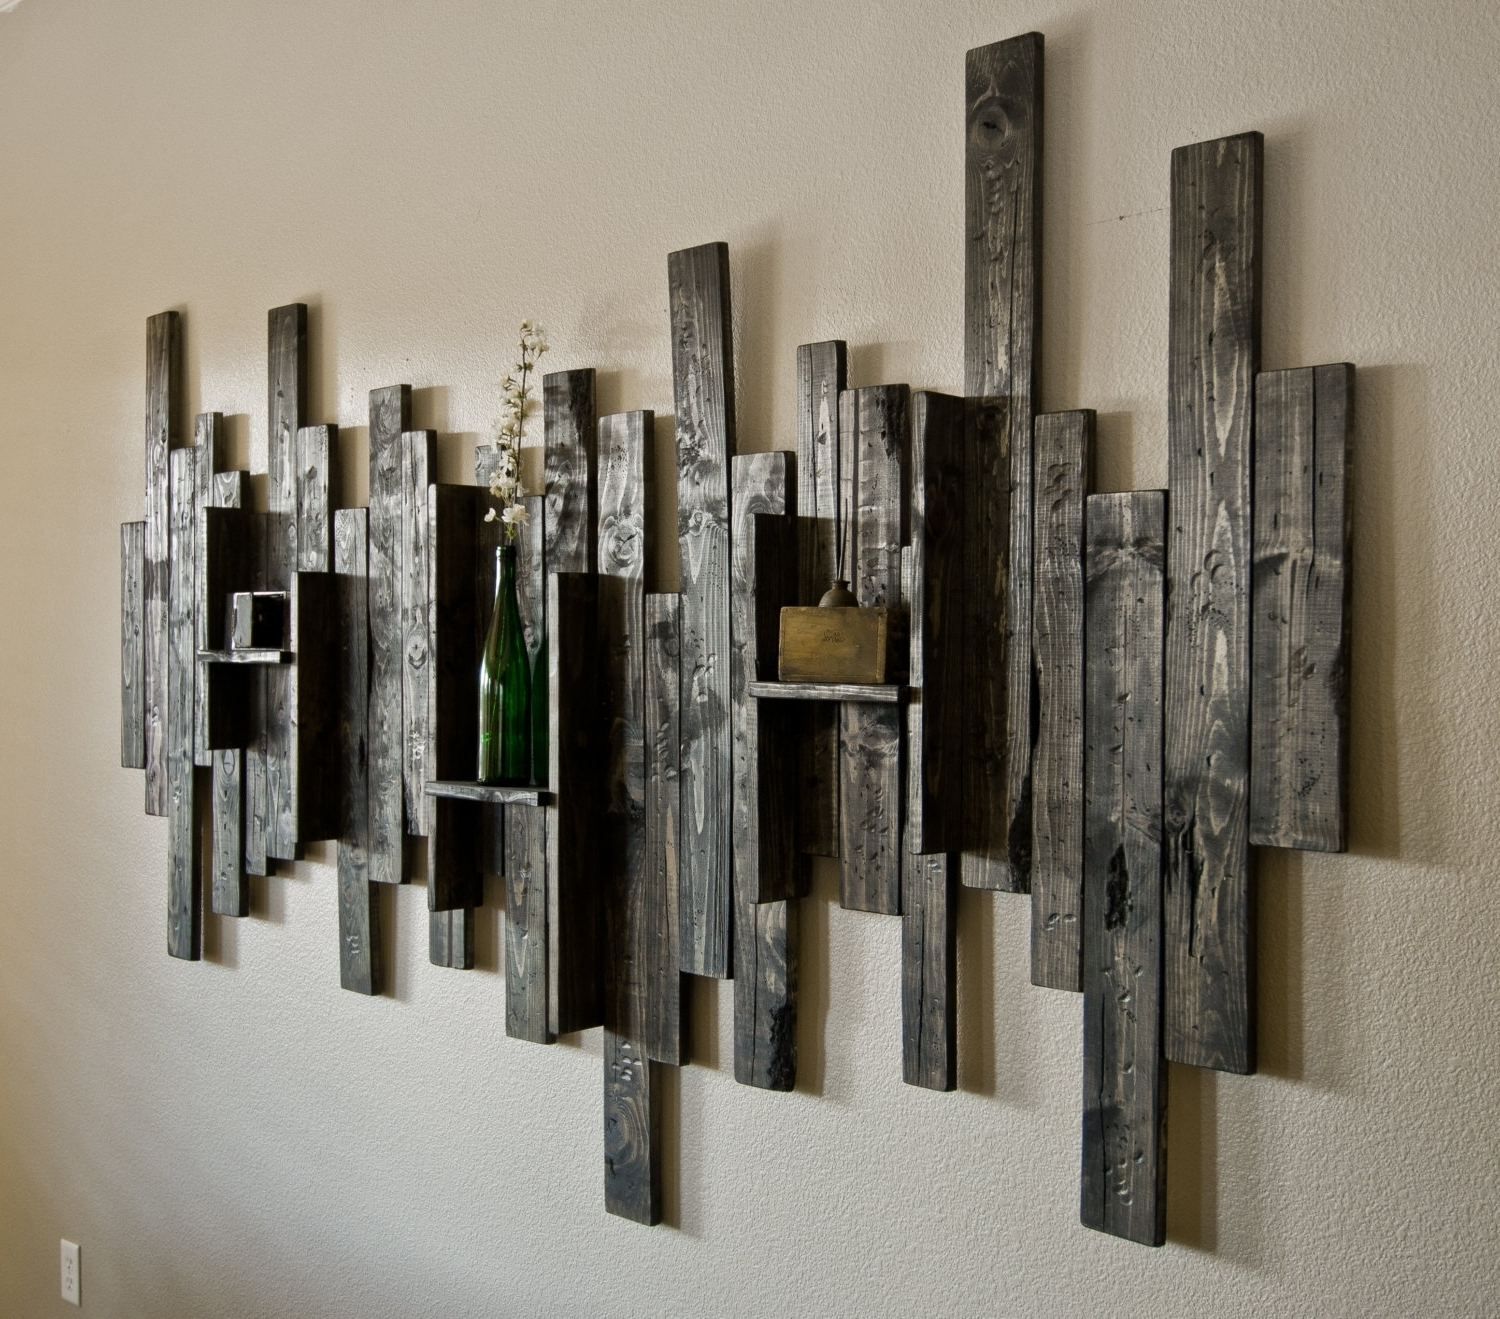 Wood And Metal Wall Art Inside 2018 Wood Metal Wall Art Stylist Design Ideas Large Wooden Wall Art With (View 13 of 20)